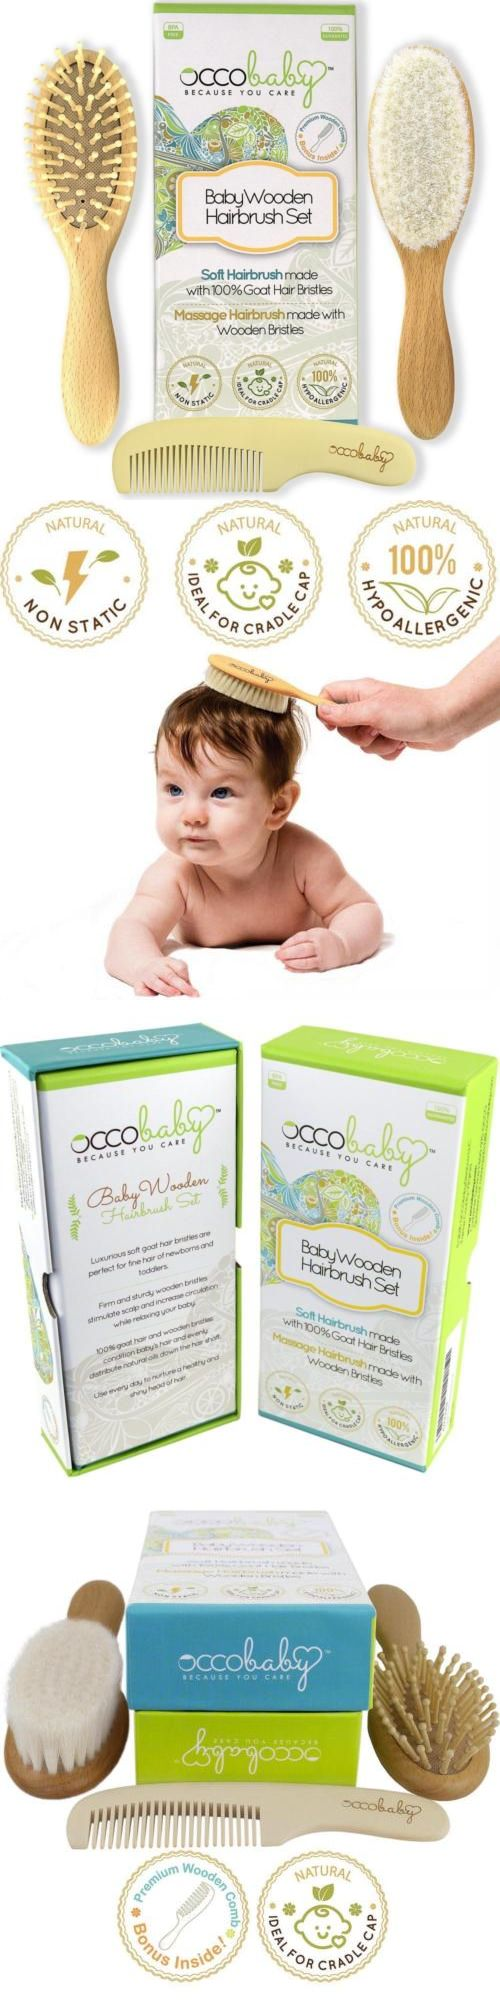 Health and Grooming 45452: Occobaby 3-Piece Wooden Baby Hair Brush And Comb Set For Newborns Toddlers  ... -> BUY IT NOW ONLY: $38.04 on eBay!